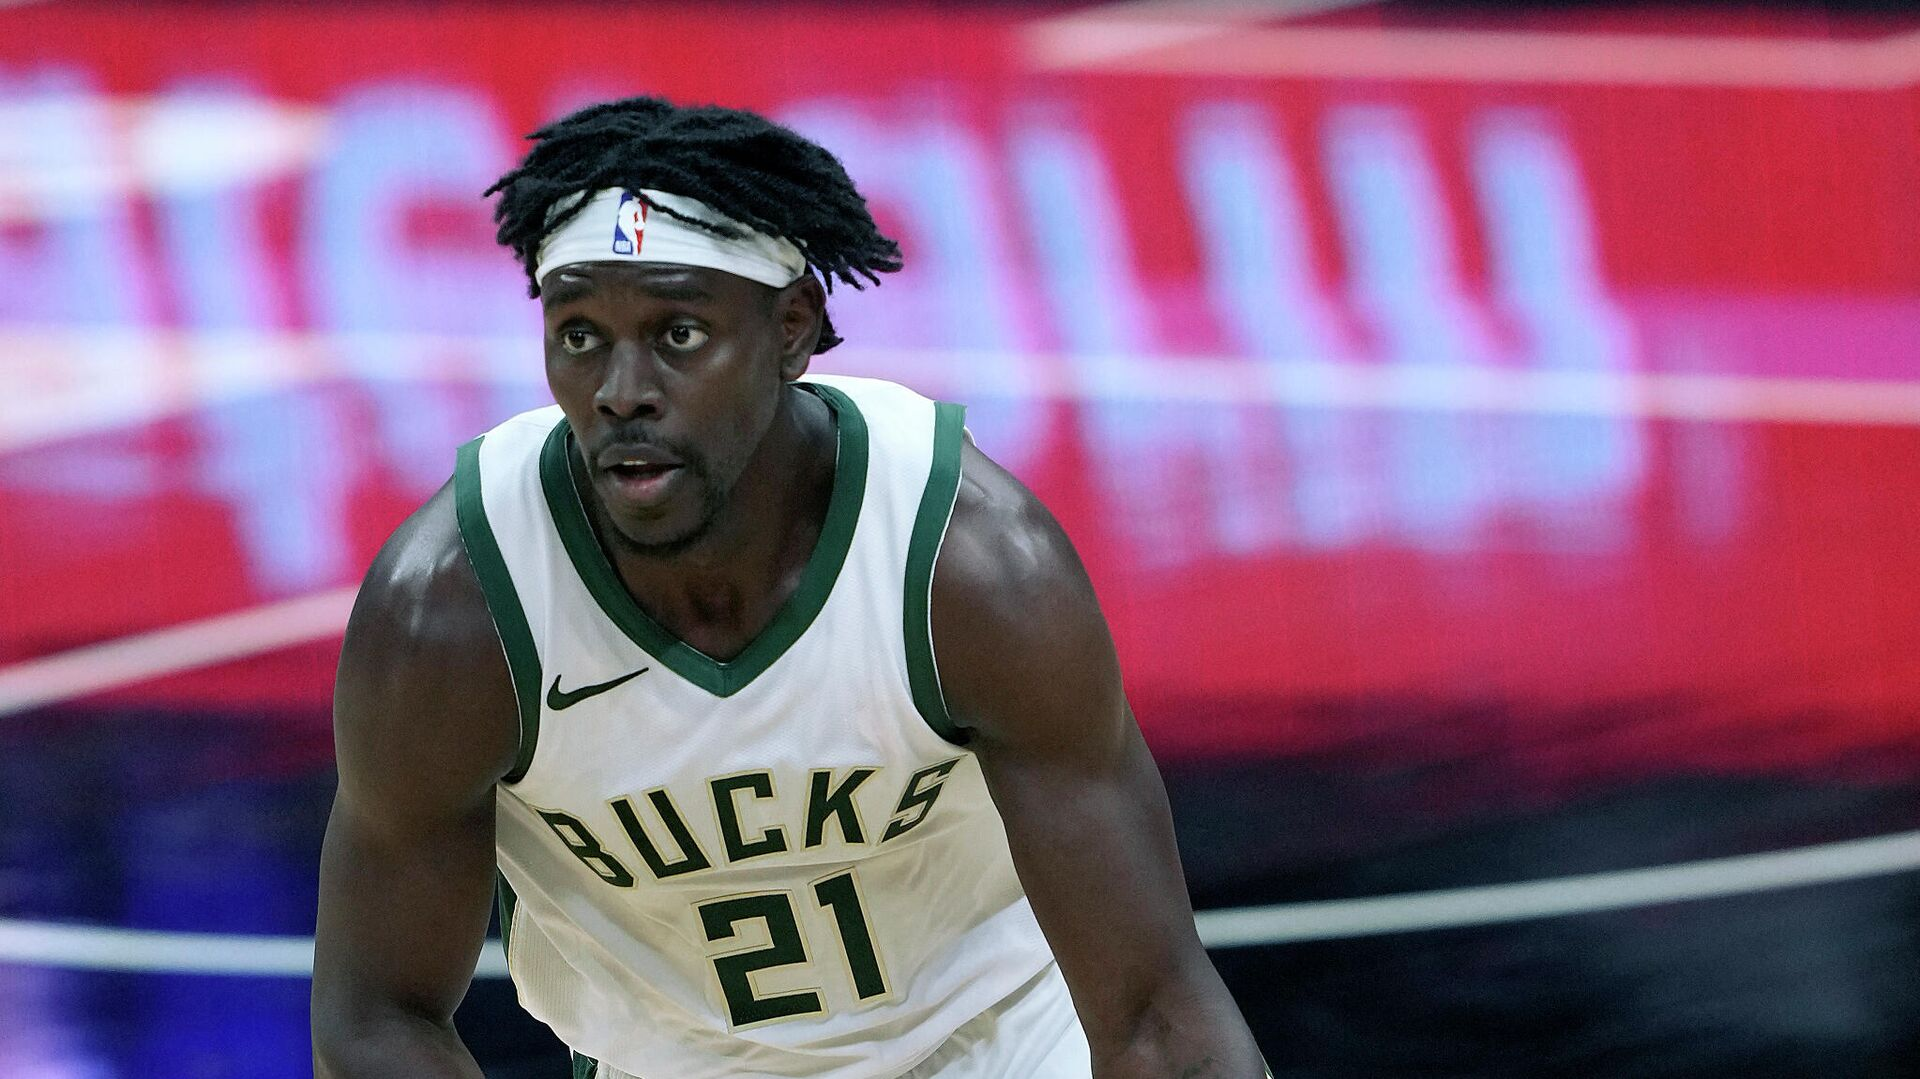 SACRAMENTO, CALIFORNIA - APRIL 03: Jrue Holiday #21 of the Milwaukee Bucks dribbles the ball up court against the Sacramento Kings during the second half of an NBA basketball game at Golden 1 Center on April 03, 2021 in Sacramento, California. NOTE TO USER: User expressly acknowledges and agrees that, by downloading and or using this photograph, User is consenting to the terms and conditions of the Getty Images License Agreement.   Thearon W. Henderson/Getty Images/AFP (Photo by Thearon W. Henderson / GETTY IMAGES NORTH AMERICA / Getty Images via AFP) - РИА Новости, 1920, 04.04.2021